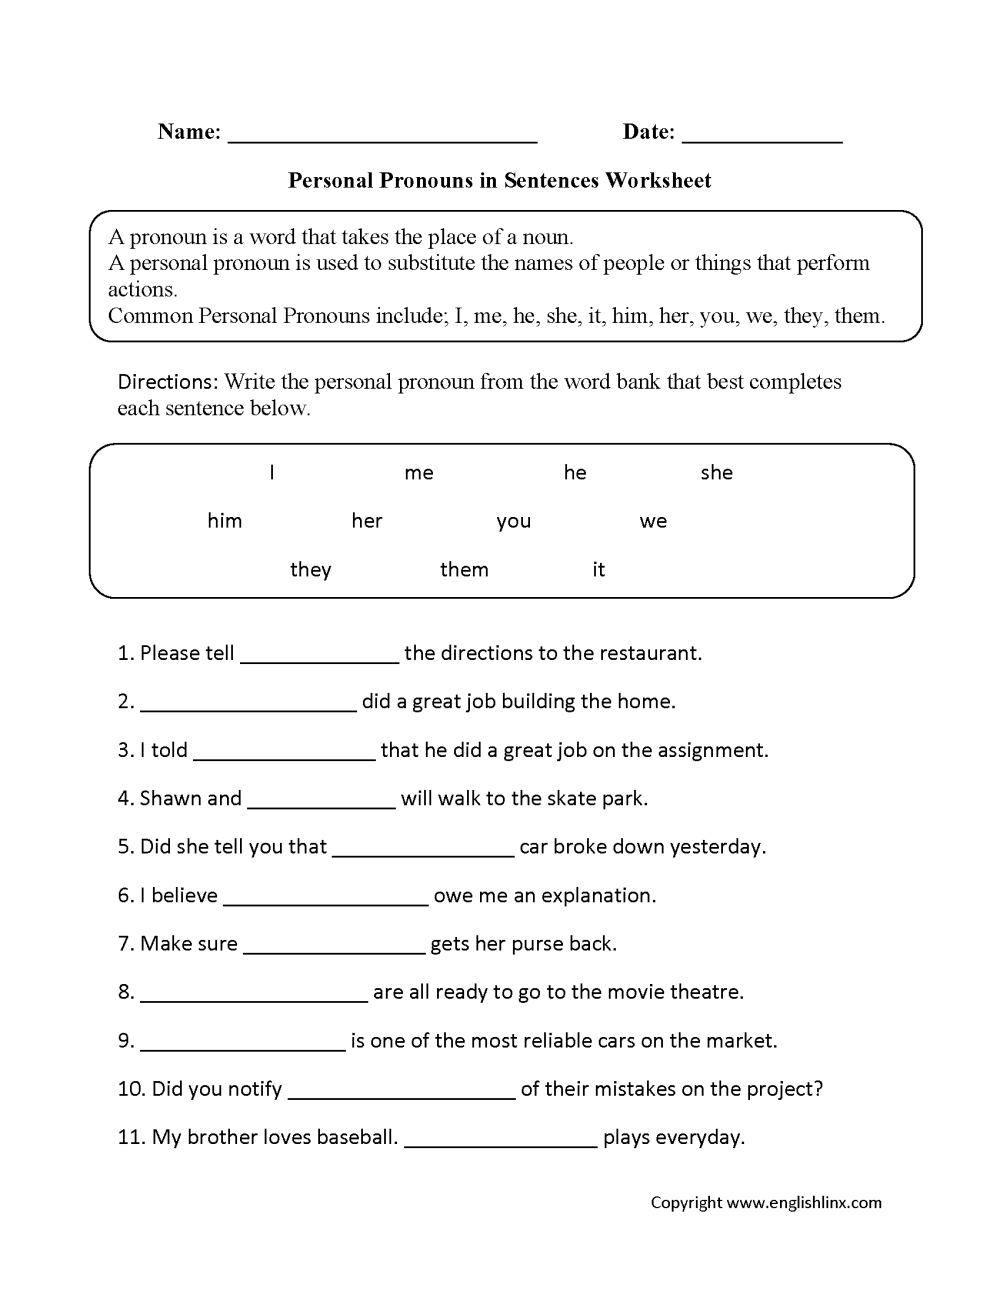 medium resolution of Relative Pronouns Worksheet Printable   Printable Worksheets and Activities  for Teachers